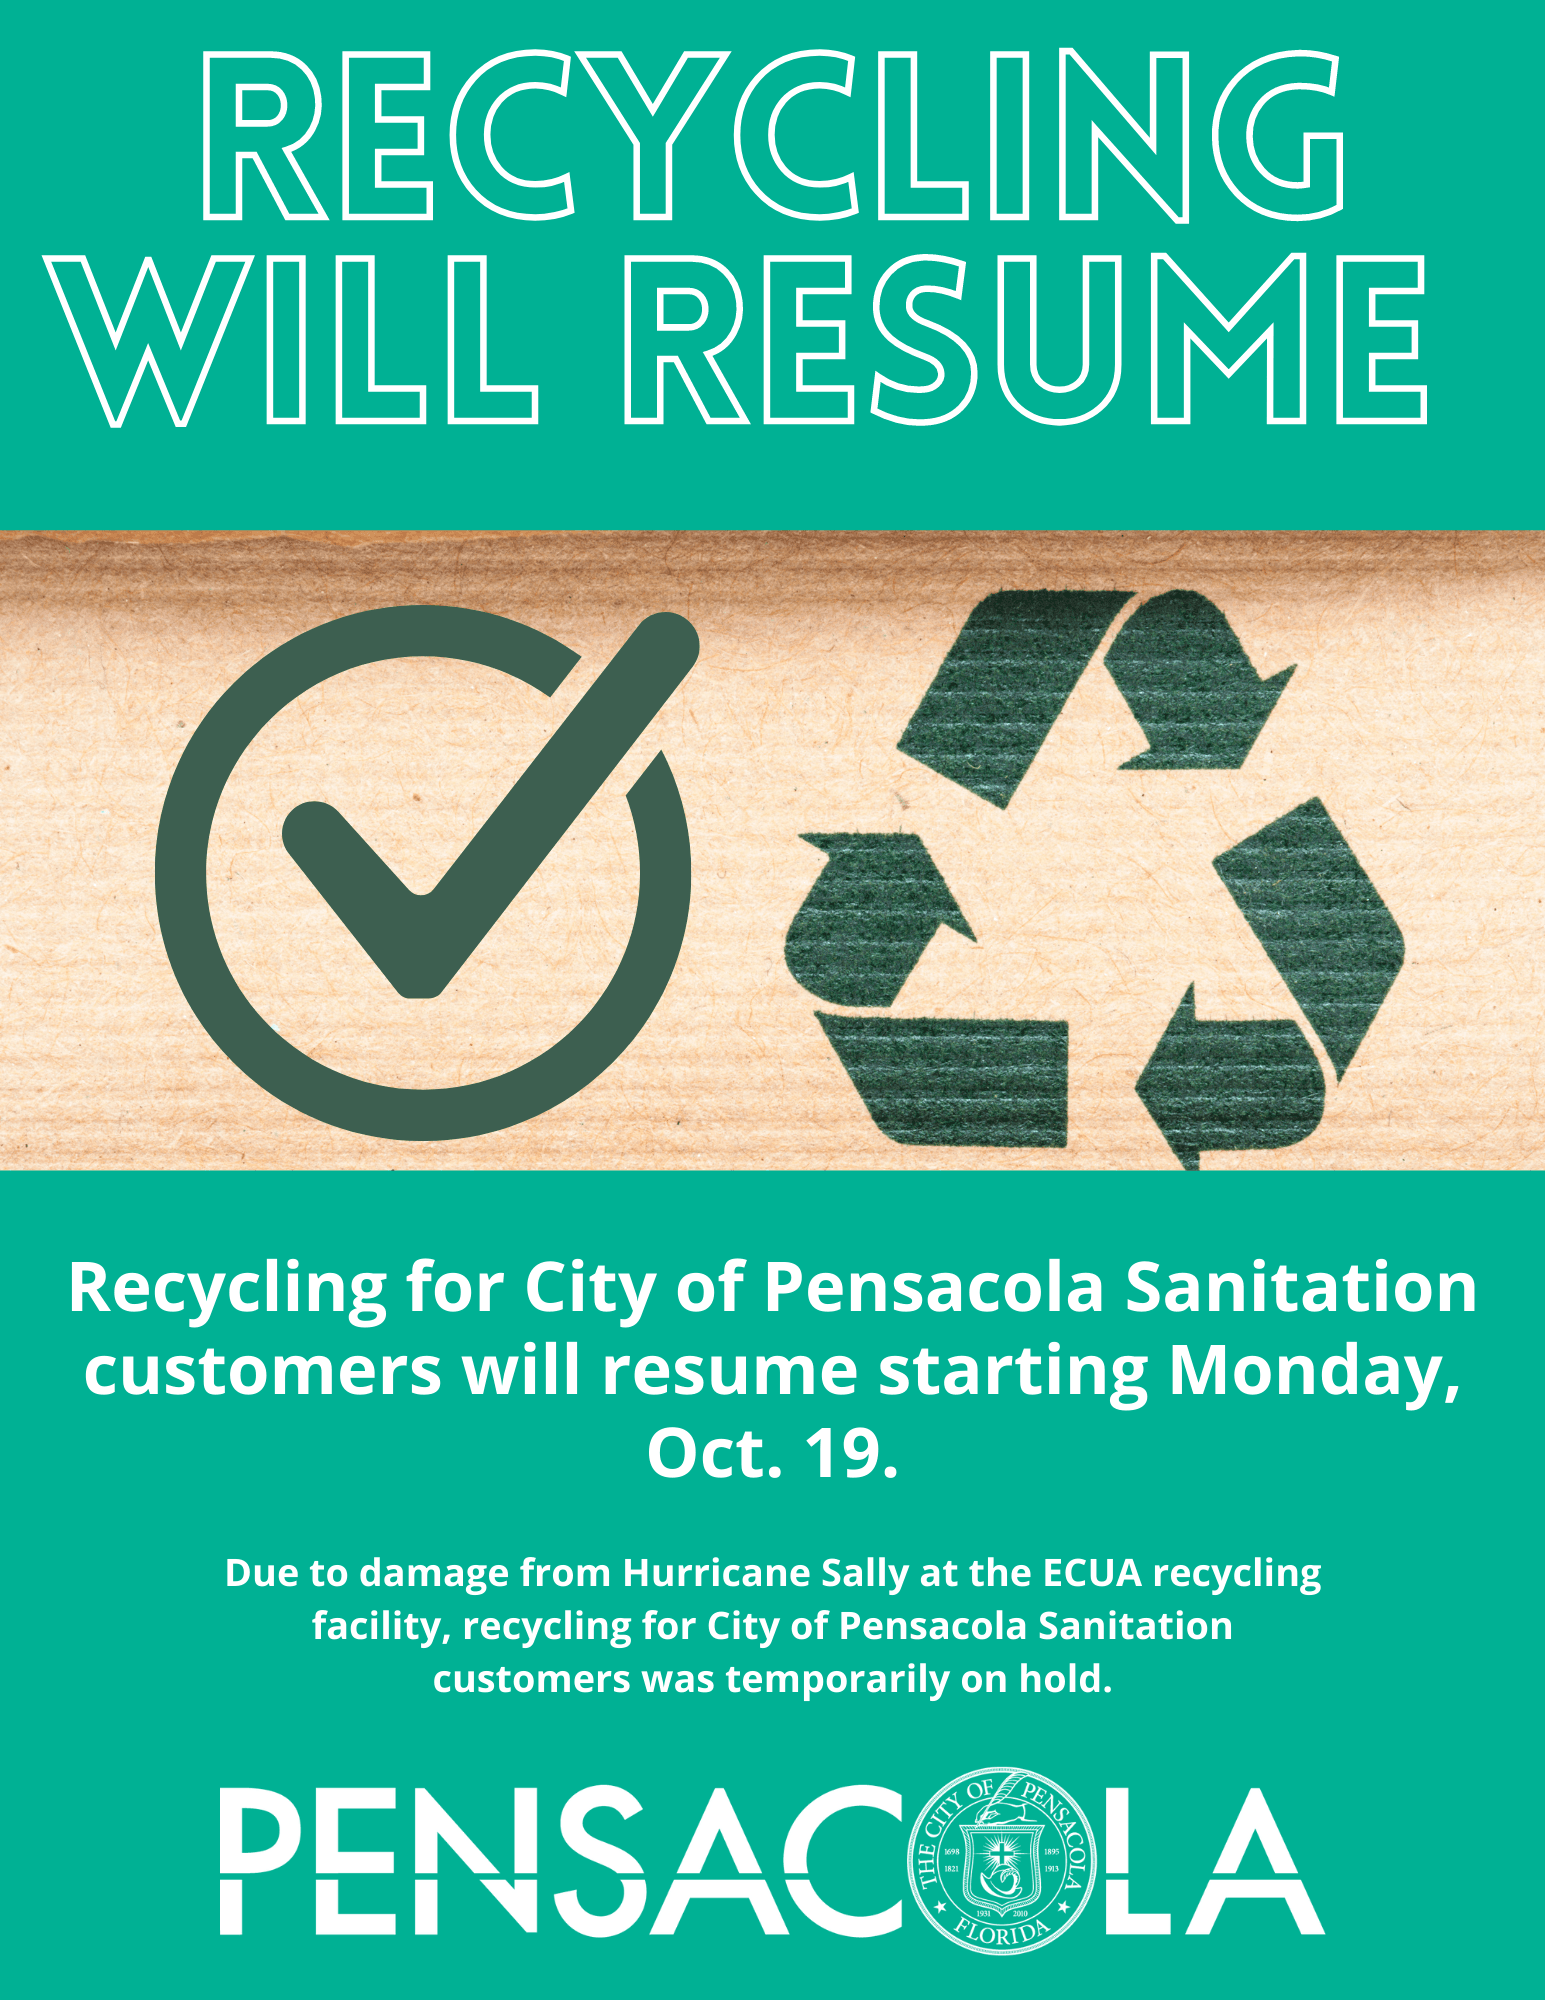 Recycling for City of Pensacola Sanitation customers will resume Monday, Oct. 19